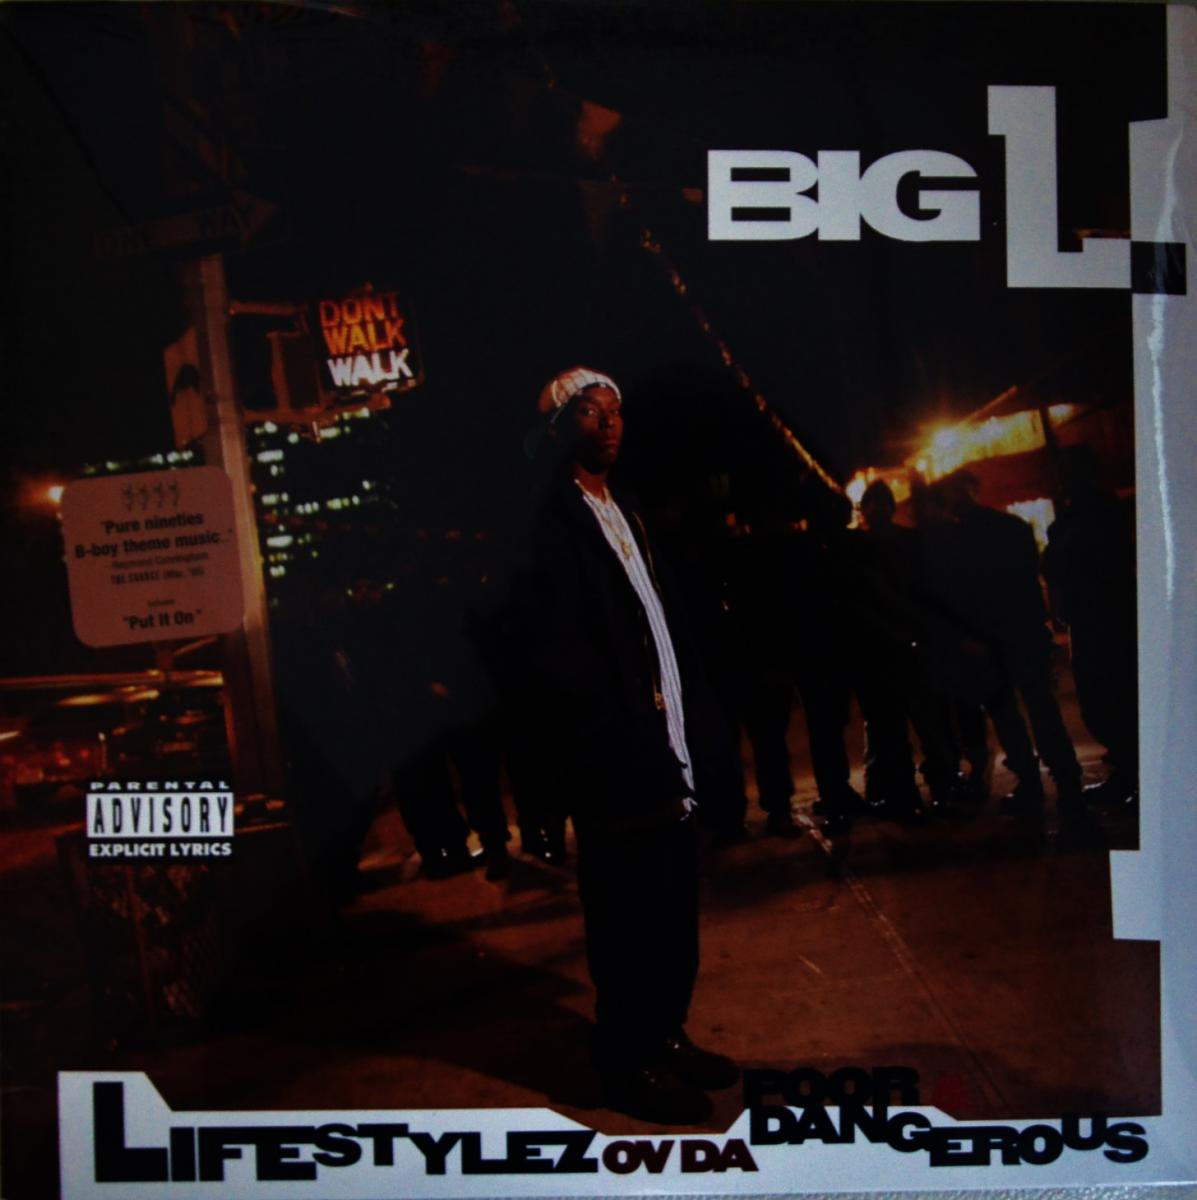 BIG L / LIFESTYLEZ OV DA POOR & DANGEROUS (1LP)